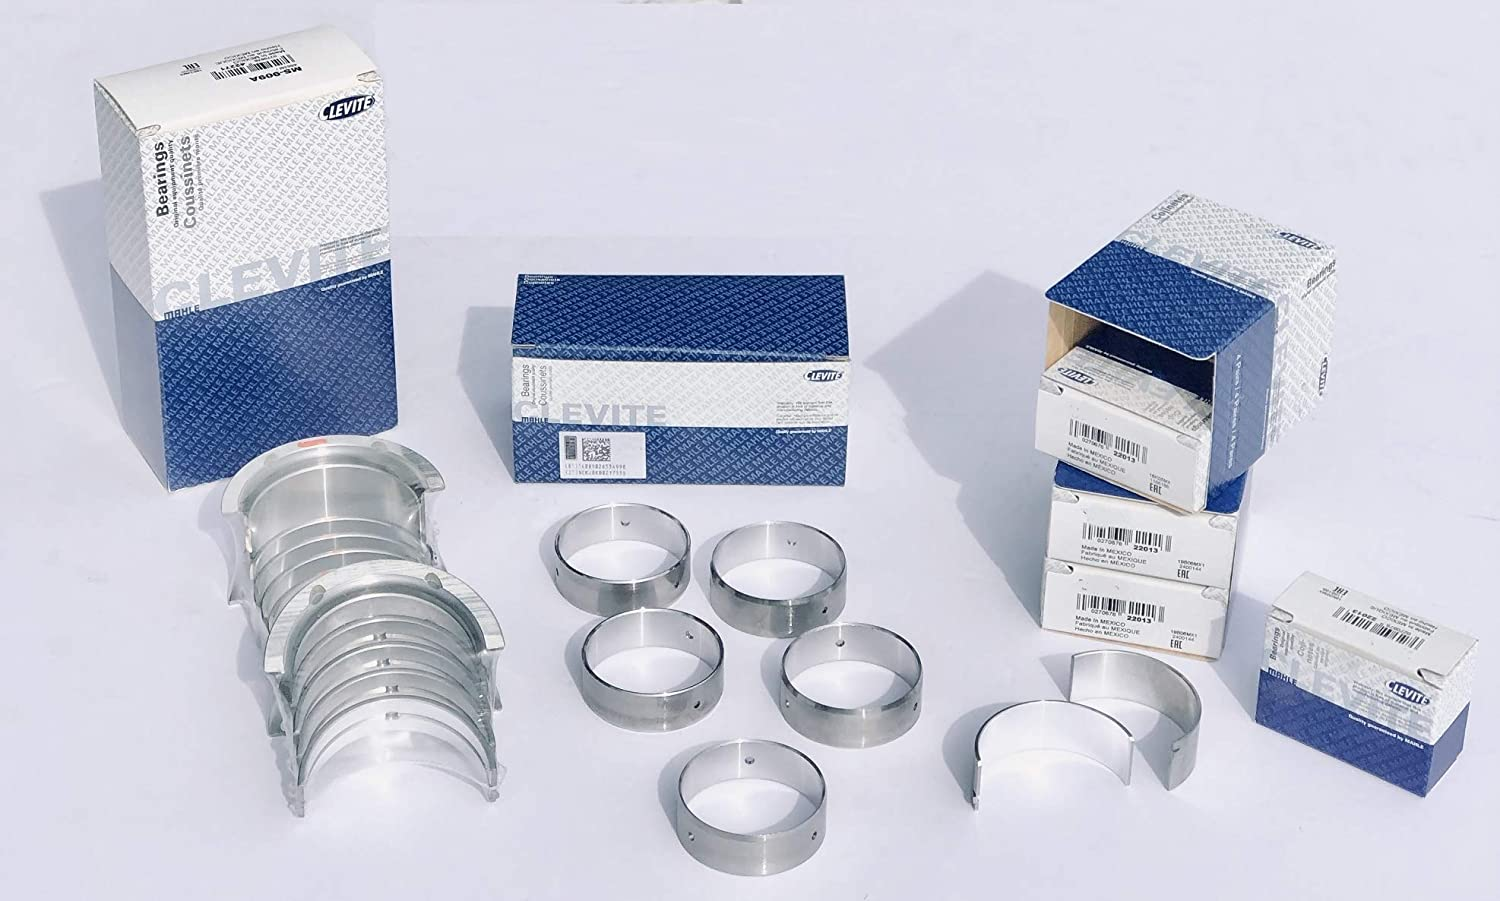 CLEVITE A Rod+Main+Cam Bearing Kit compatible with Chevy SB 305 307 327 350 383 1967-02 LT1+LT4 .020 rods//.20 main